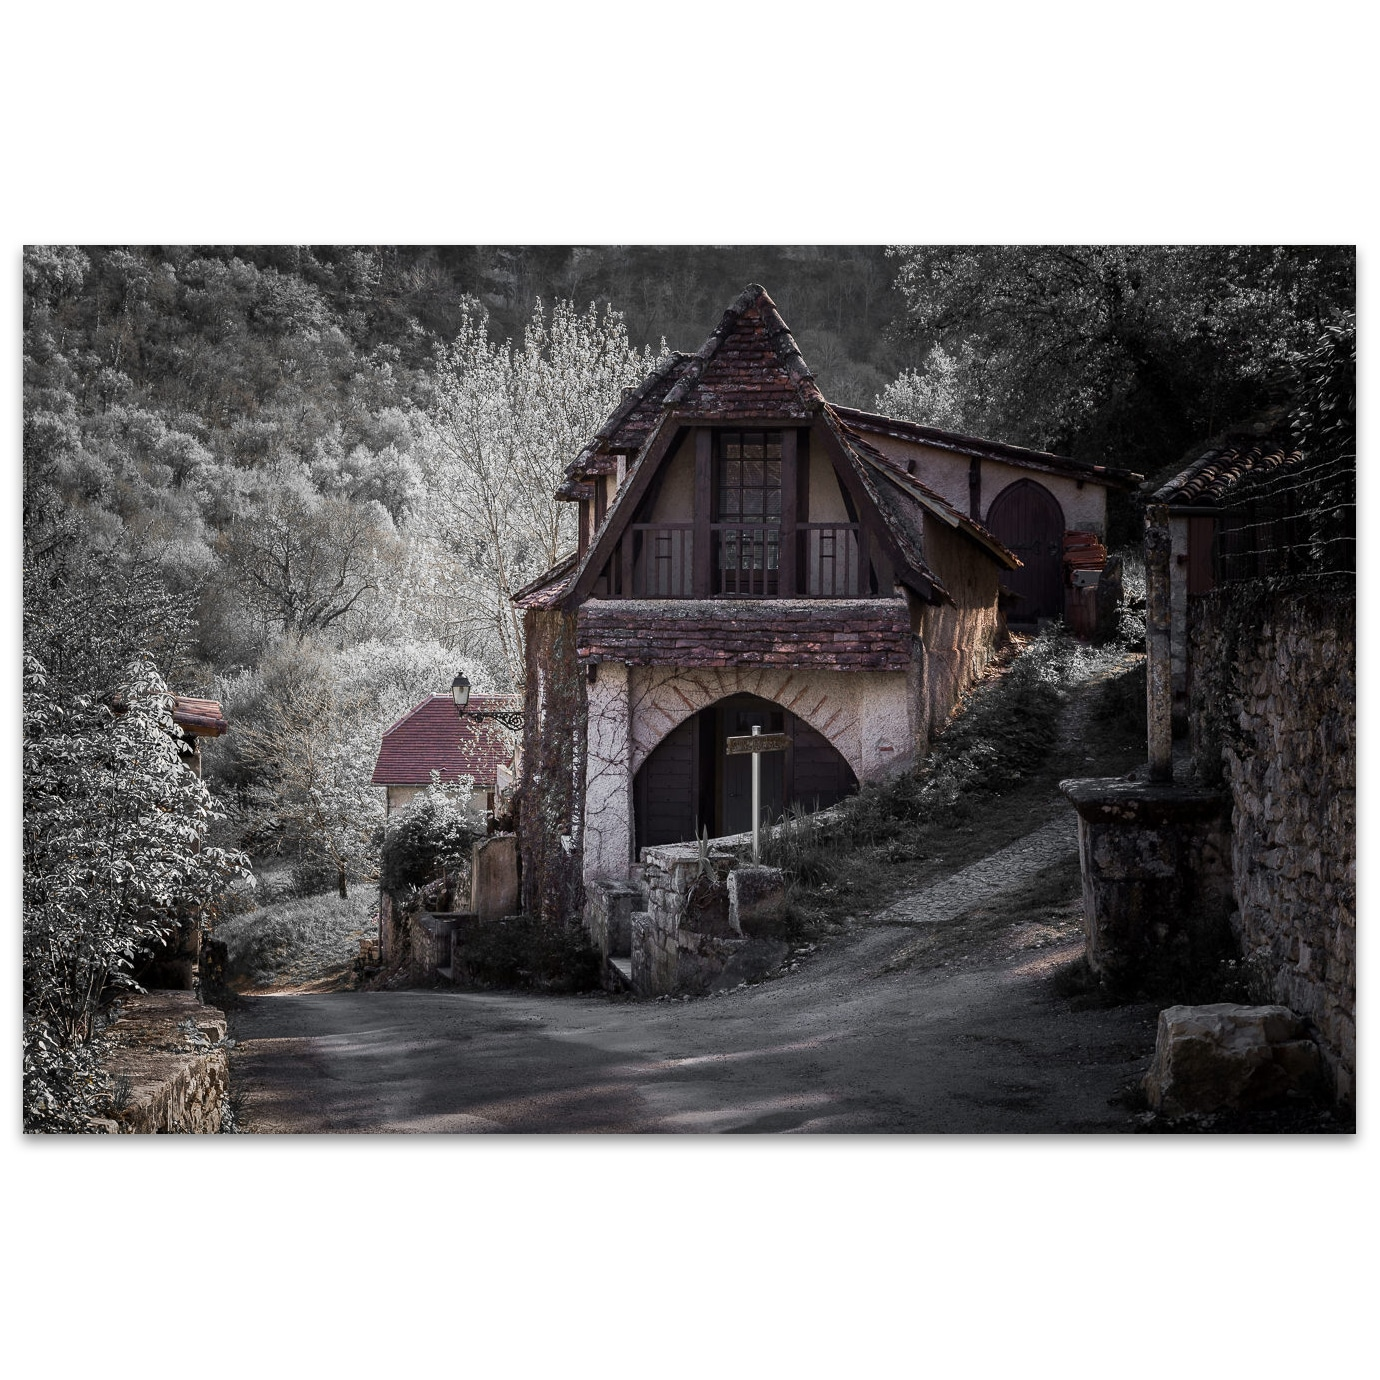 The witch house near Rocamadour in France